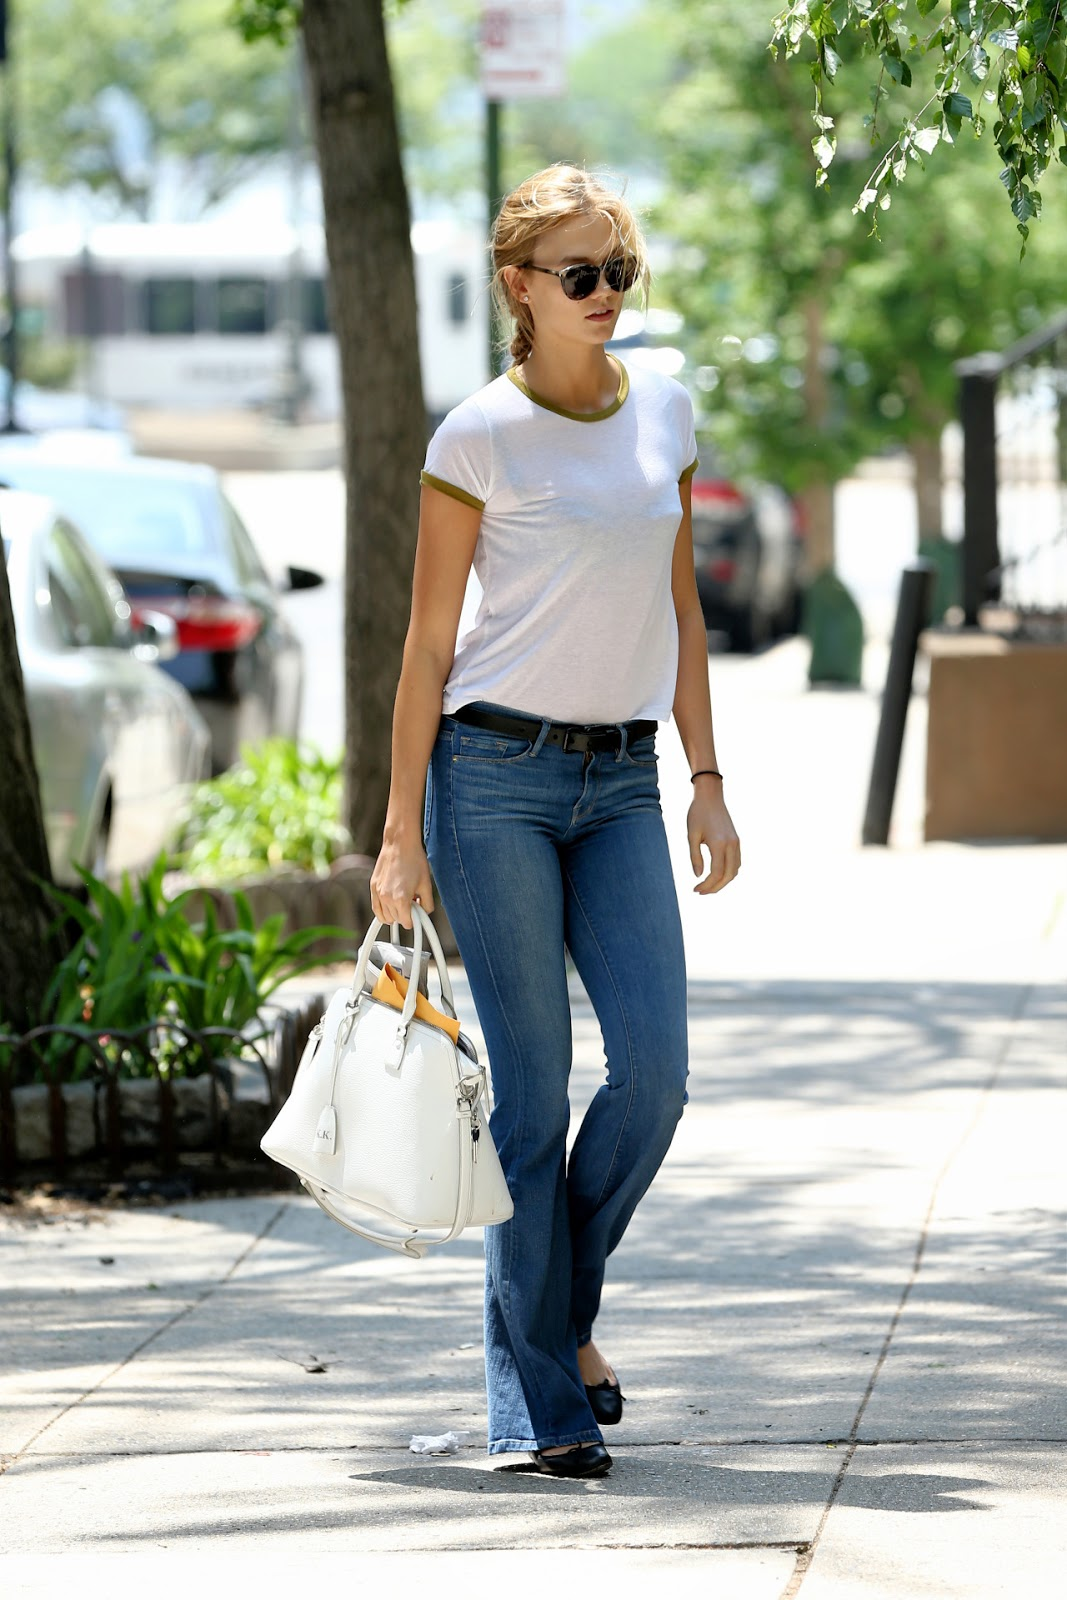 Karlie Kloss in Jeans & a White Tee in NYC